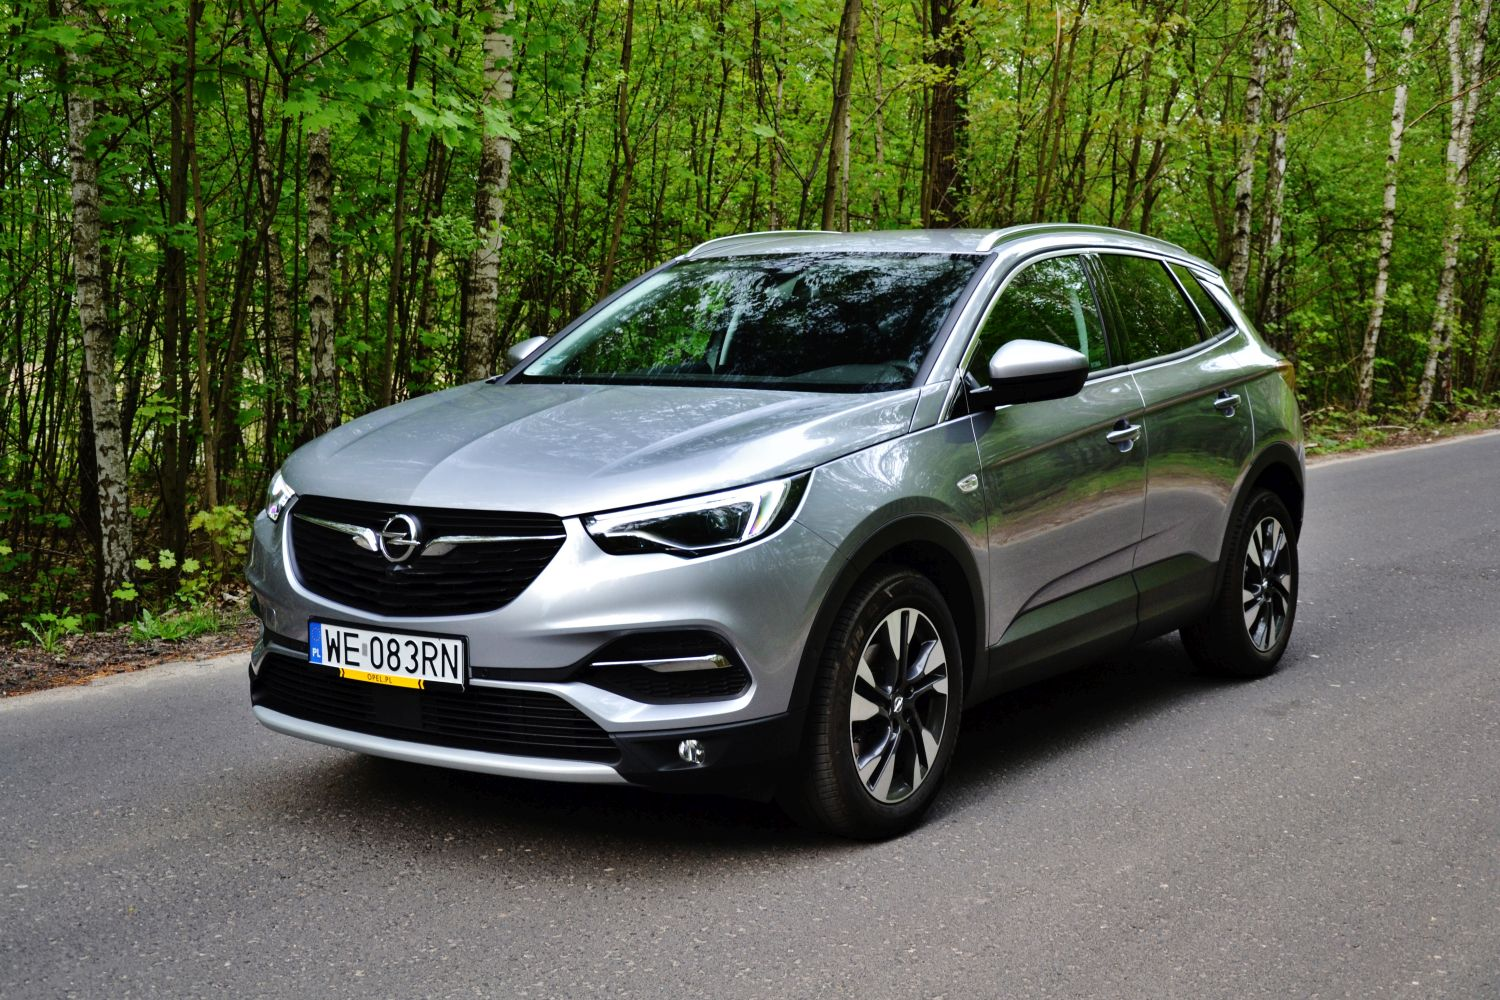 opel grandland x 1 2 turbo at ultimate bli niaczo inny namasce. Black Bedroom Furniture Sets. Home Design Ideas